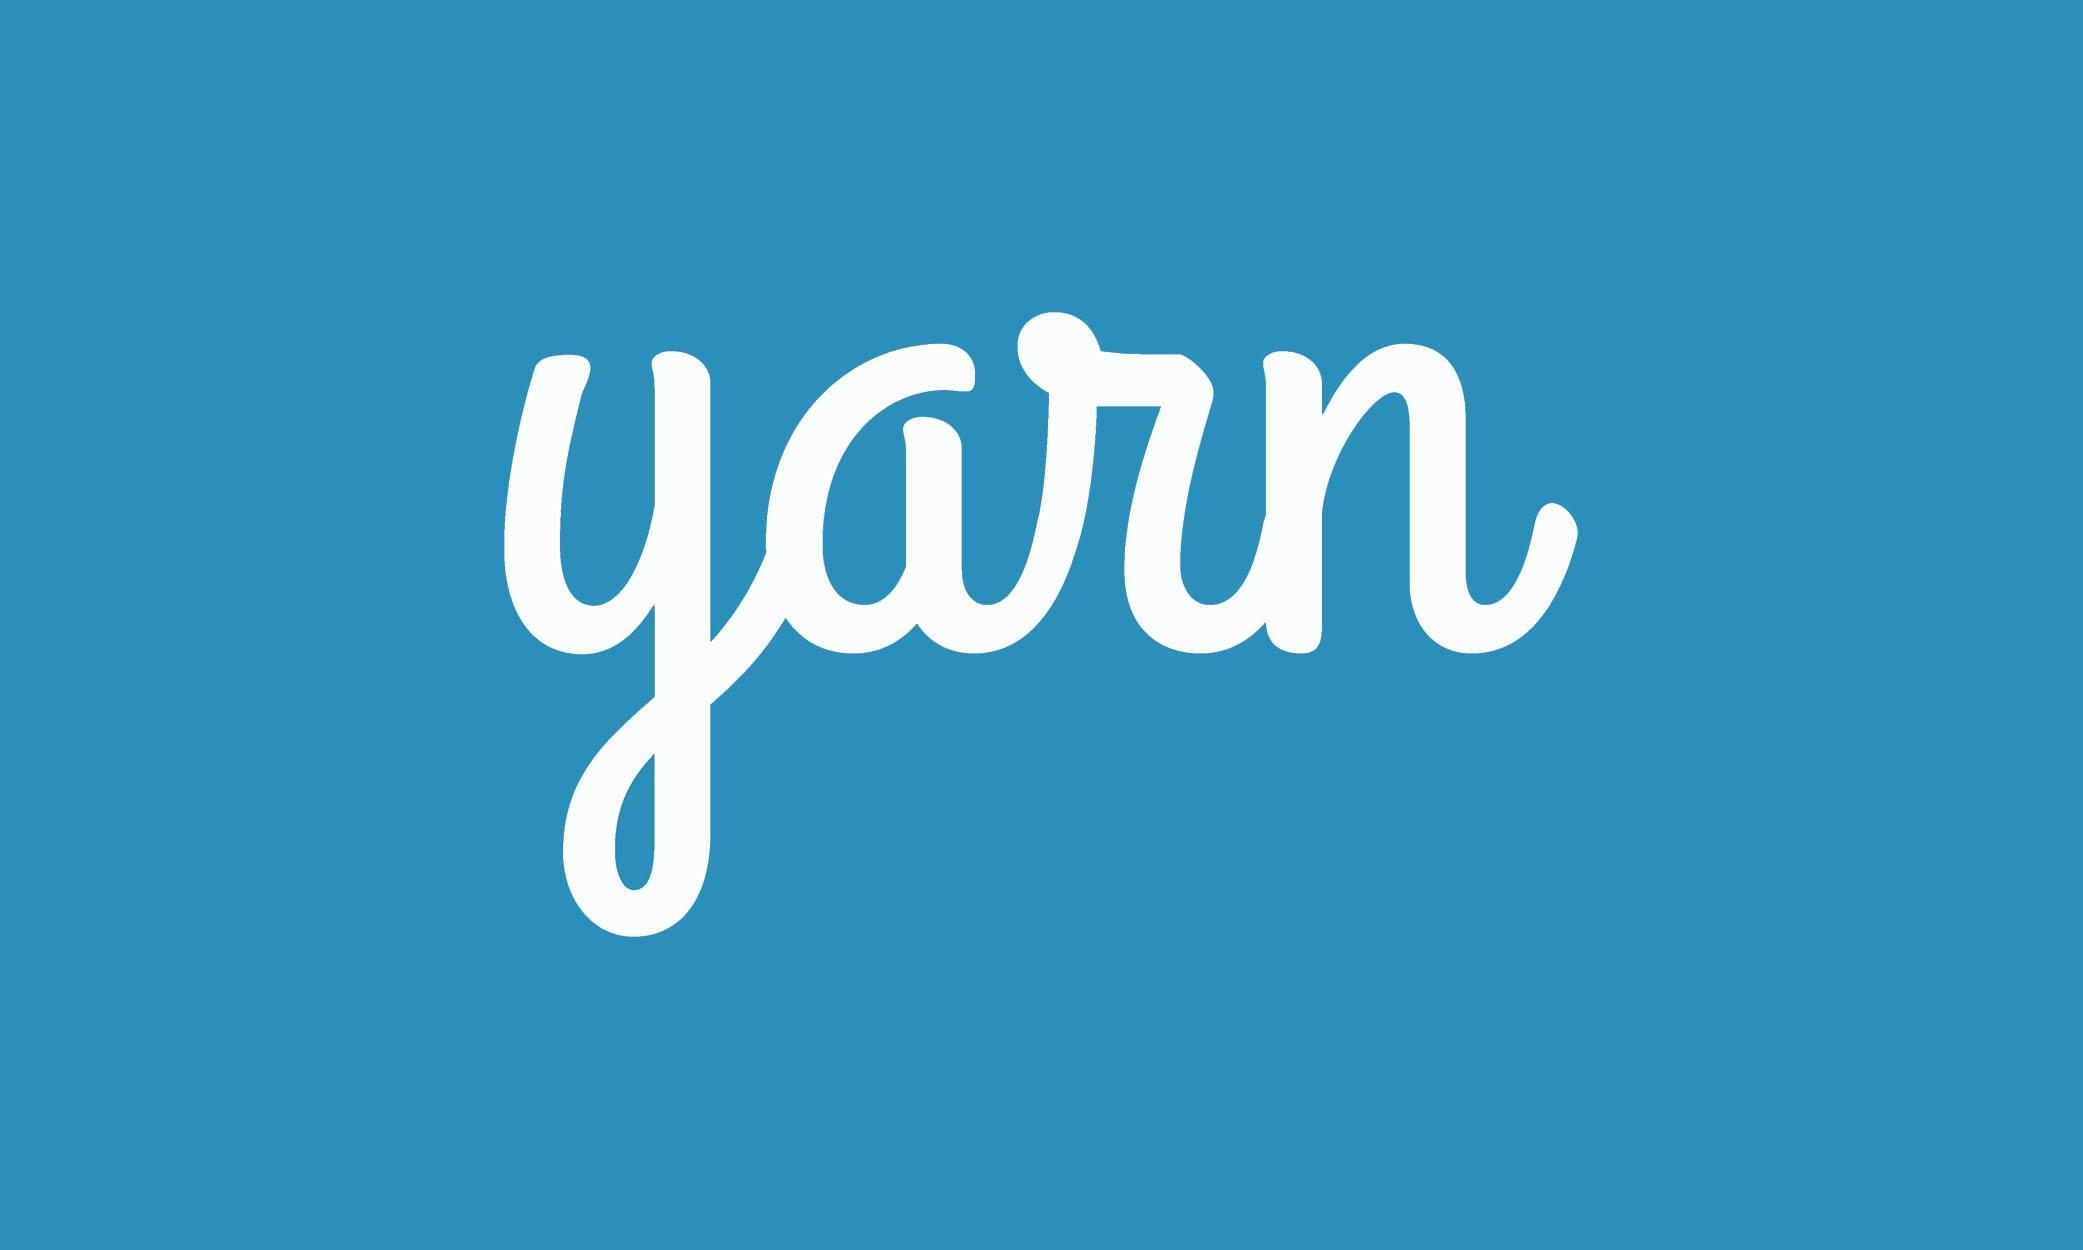 Yarn vs npm - Yarn logo